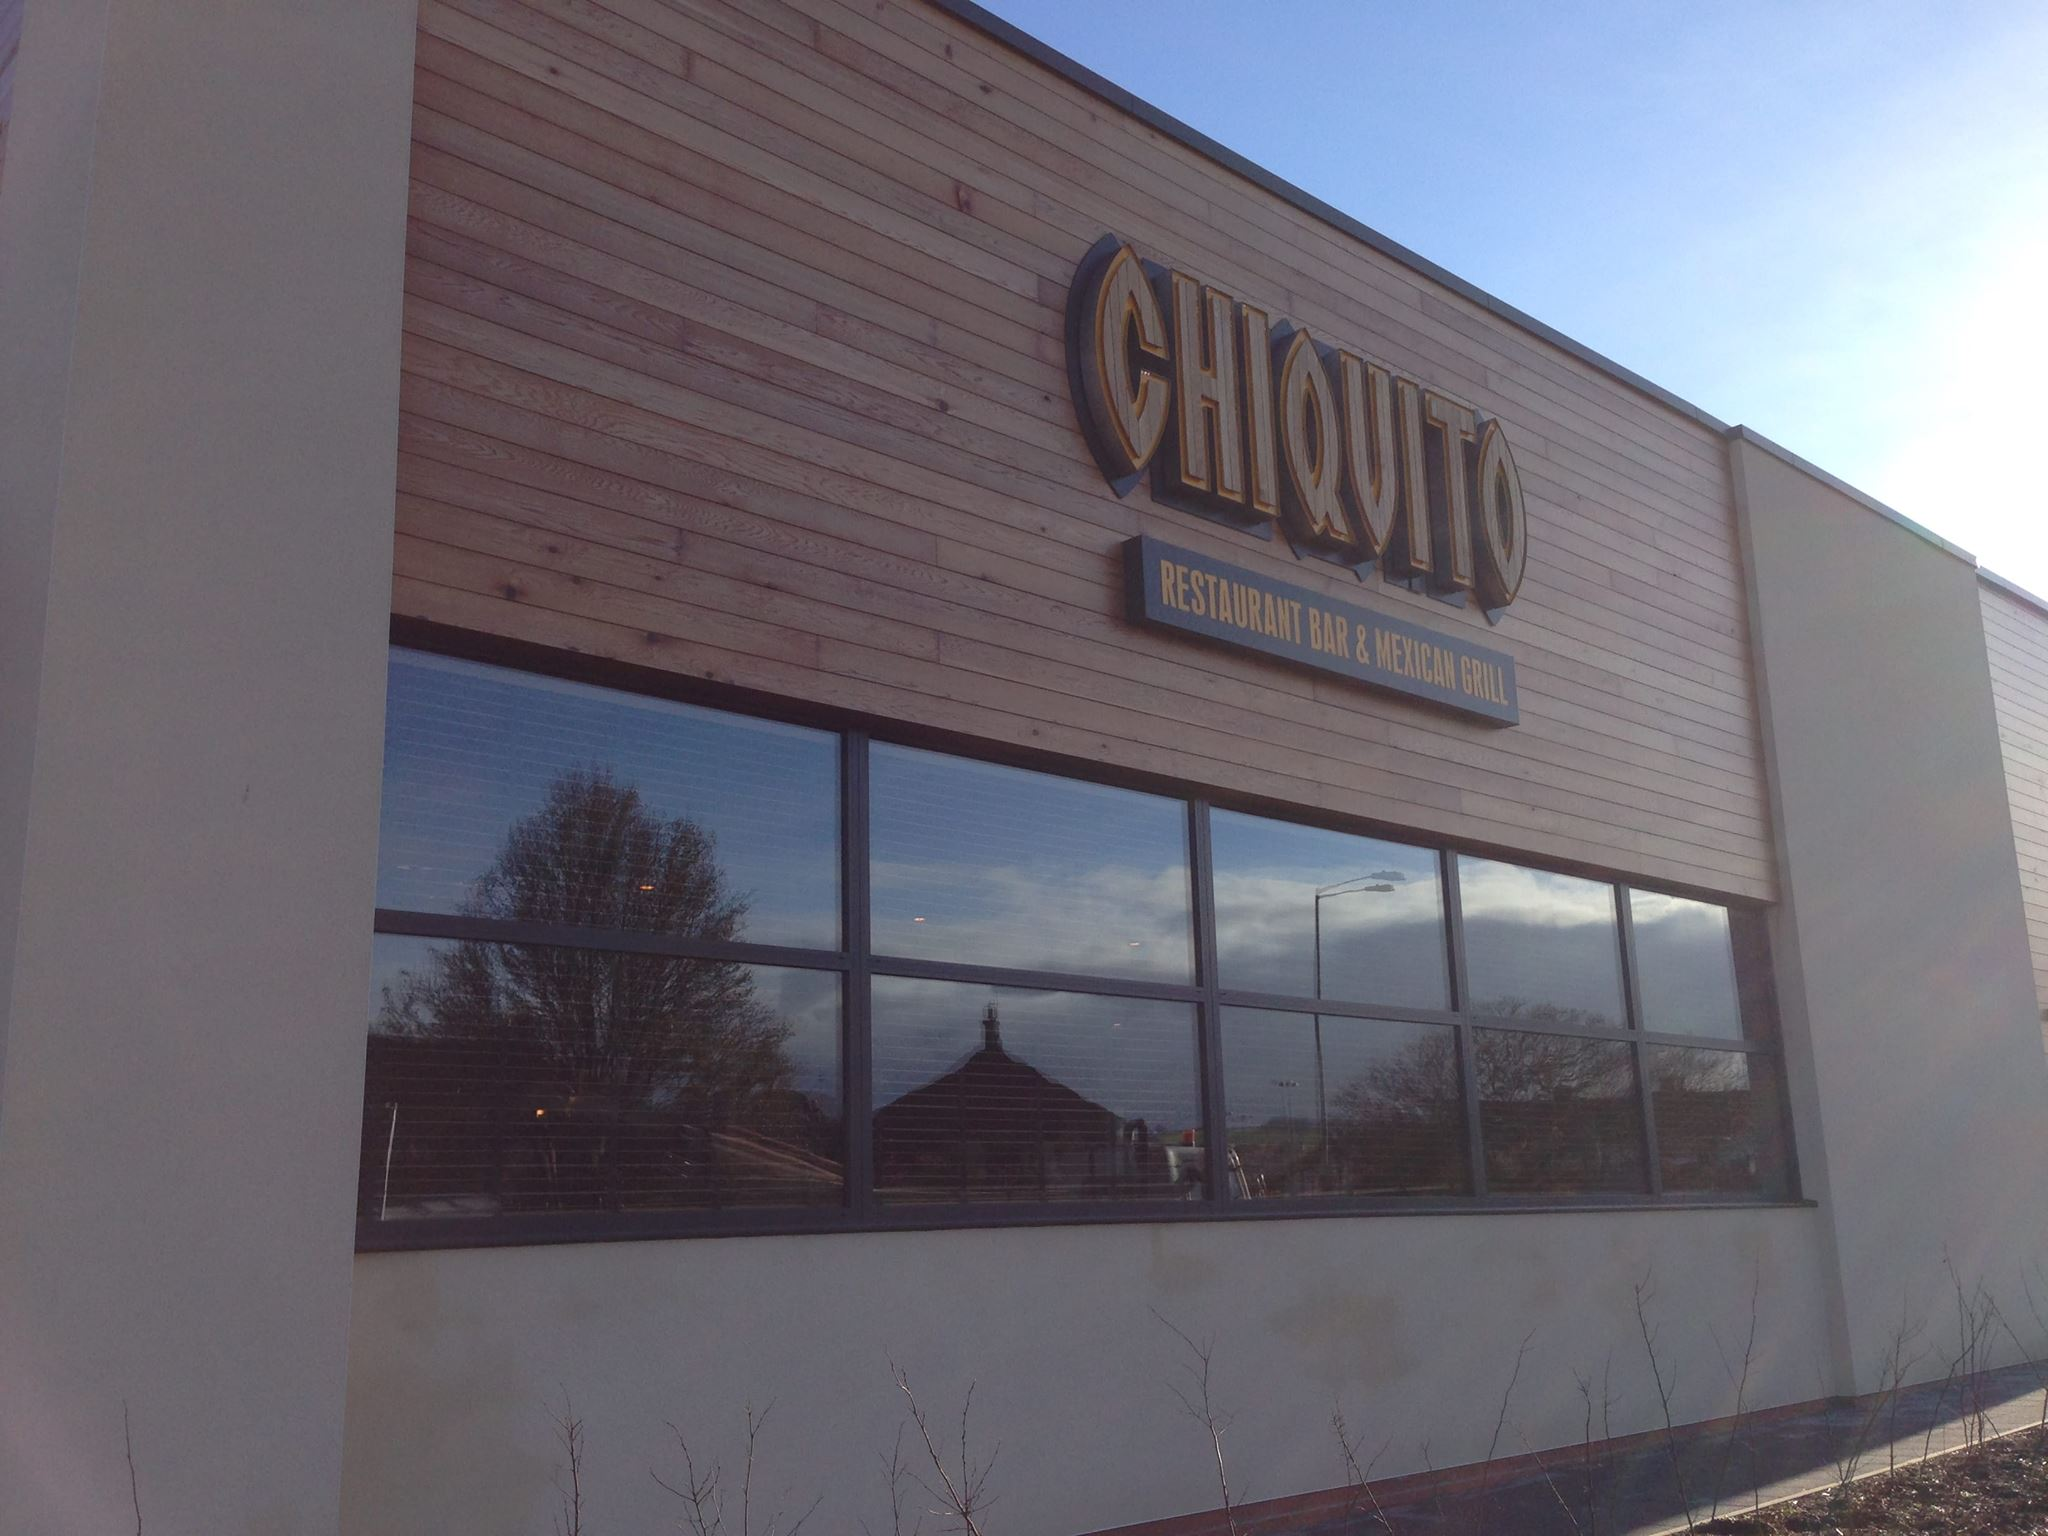 Chiquito Restaurant Glass Front